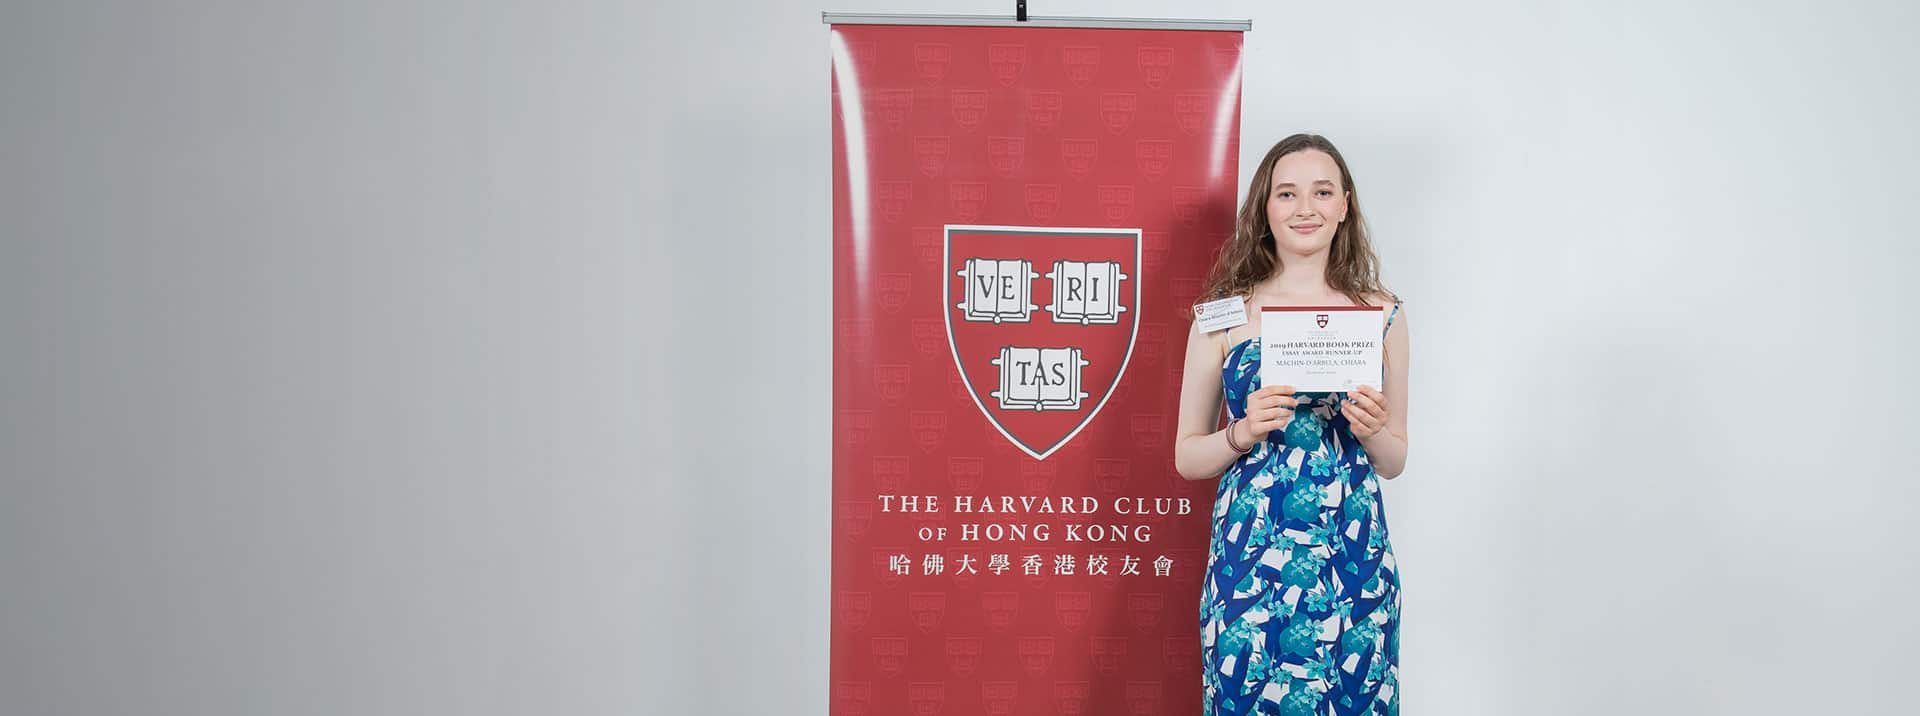 The Harbour School Clinches First Runner-Up in Prestigious Harvard Book Prize Essay Award